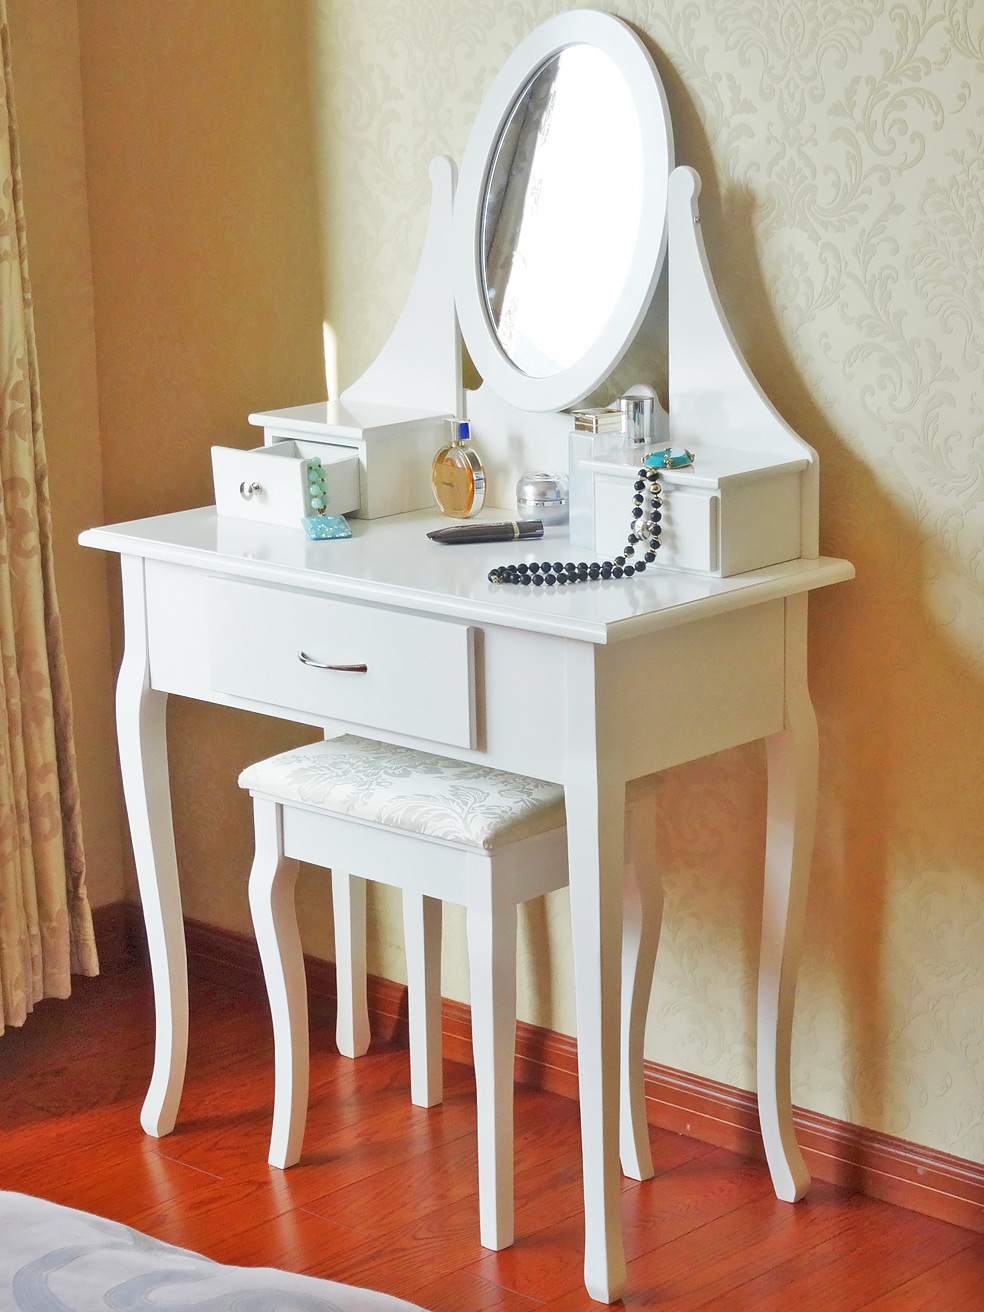 White Dressing Table Makeup Desk With Stool, 3 Drawers